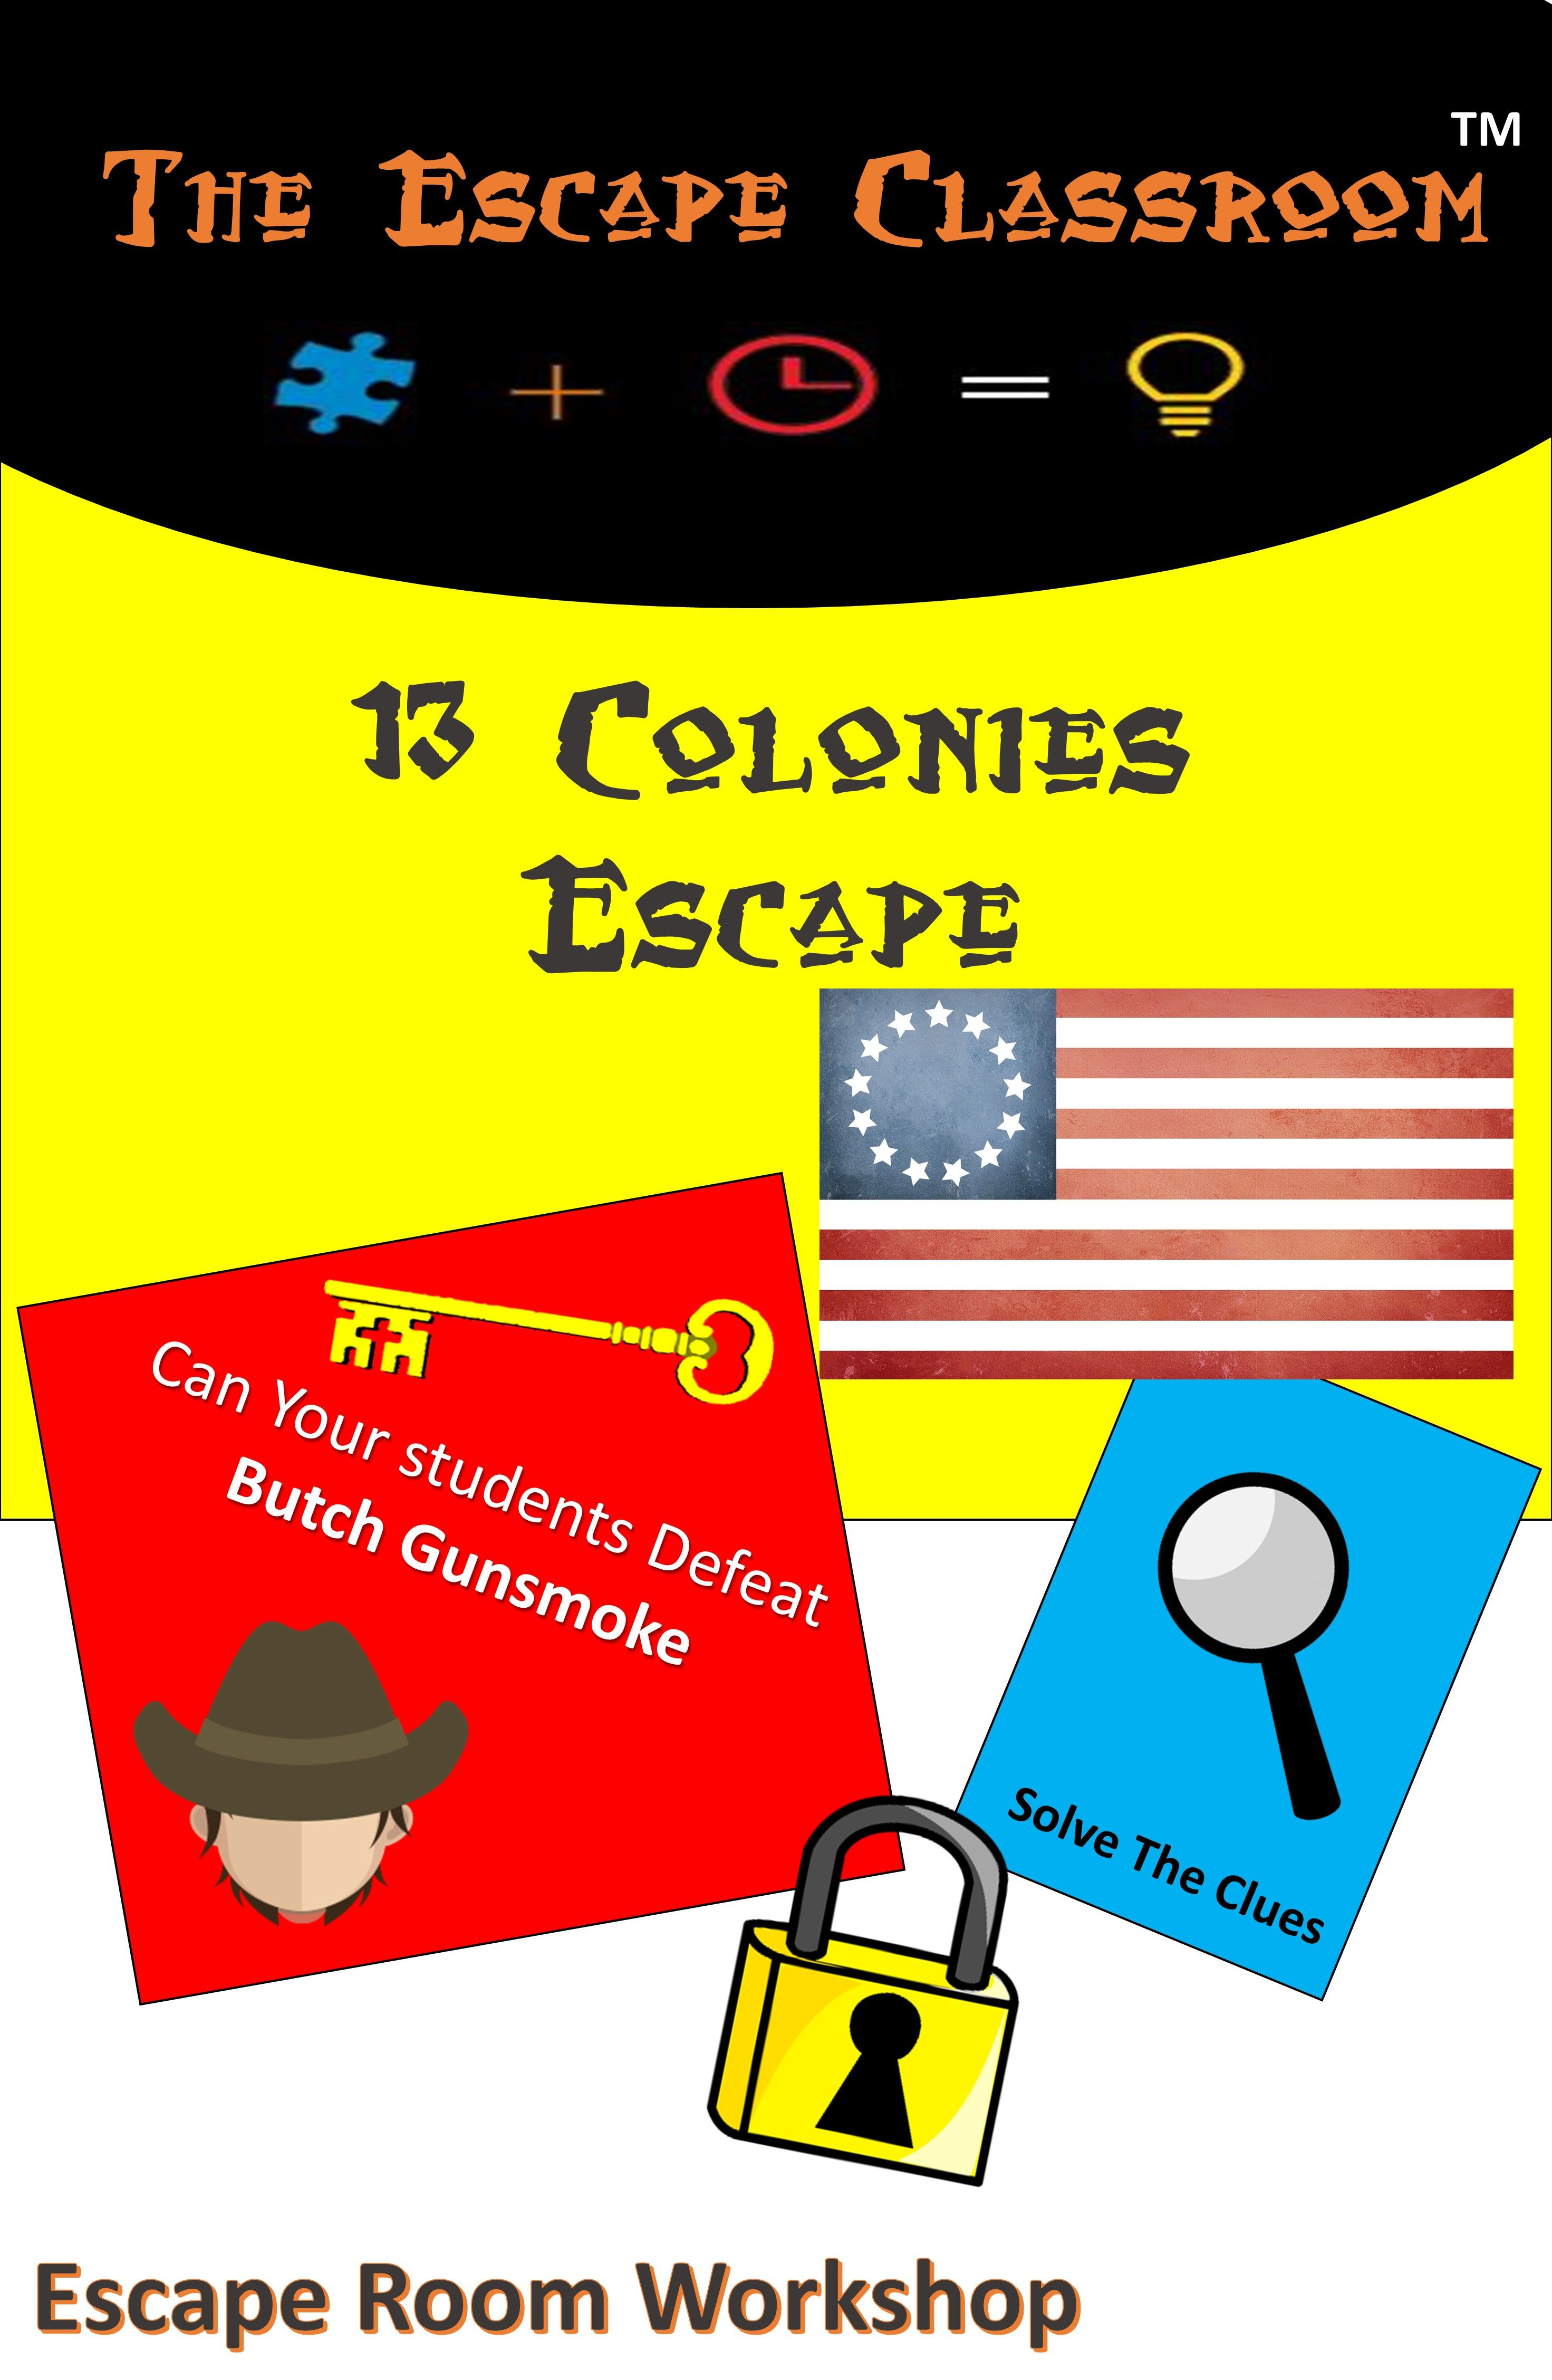 13 Colonies Escape Room from The Escape Classroom Escape The Classroom,  Classroom Ideas, American